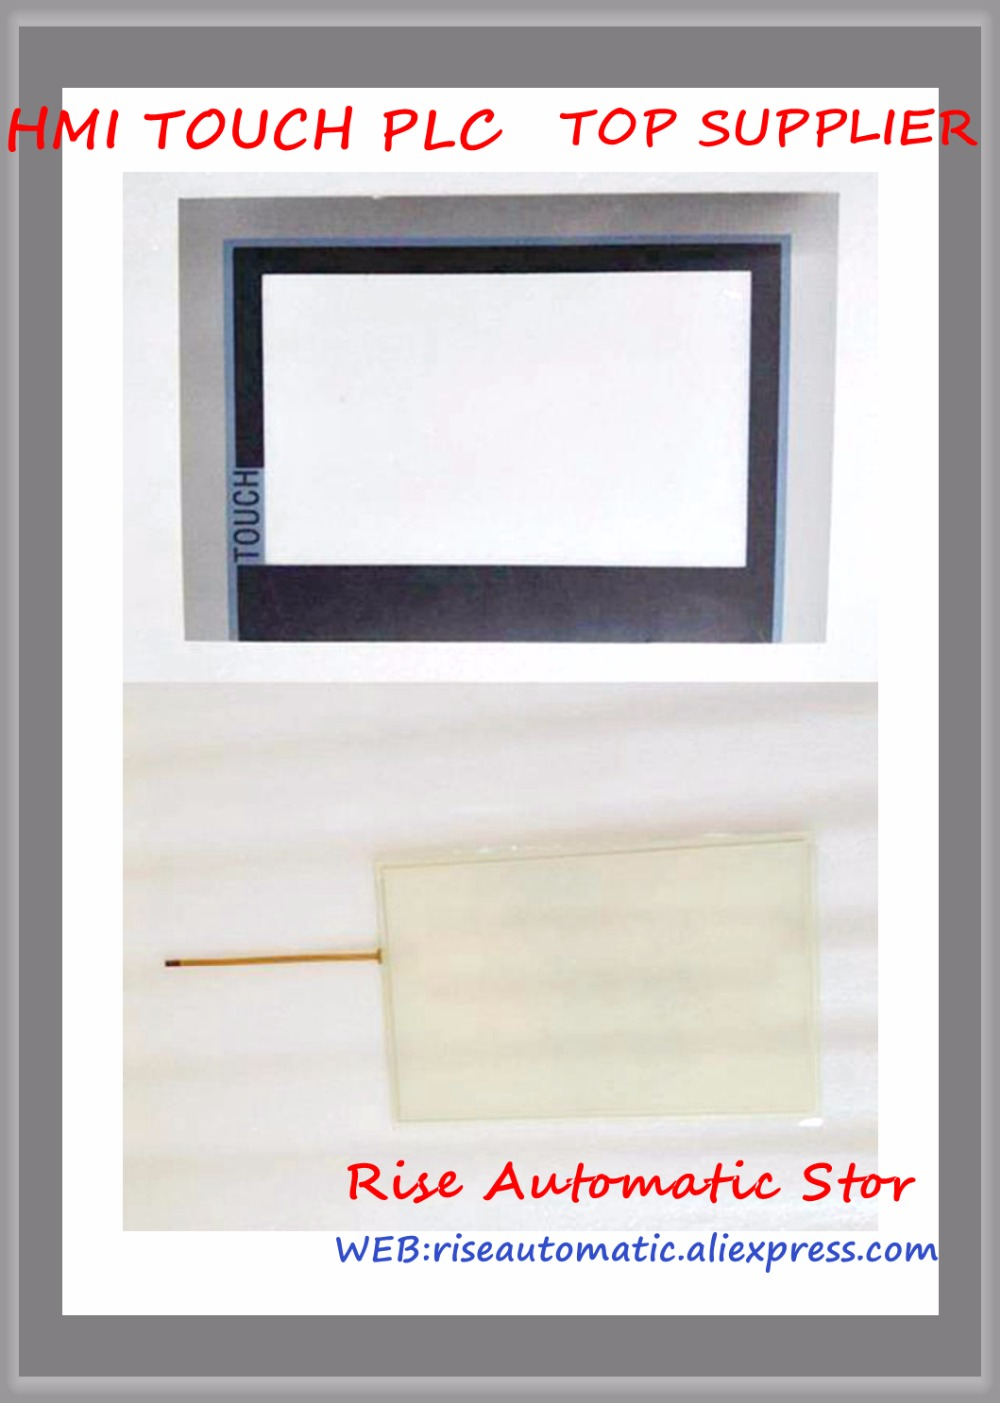 все цены на New Touch Glass+ Protective film 6AV2124-0MC01-0AX0 for HMI TP1200 12 touch panel 6AV2 124-0MC01-0AX0 6AV21240MC010AX0